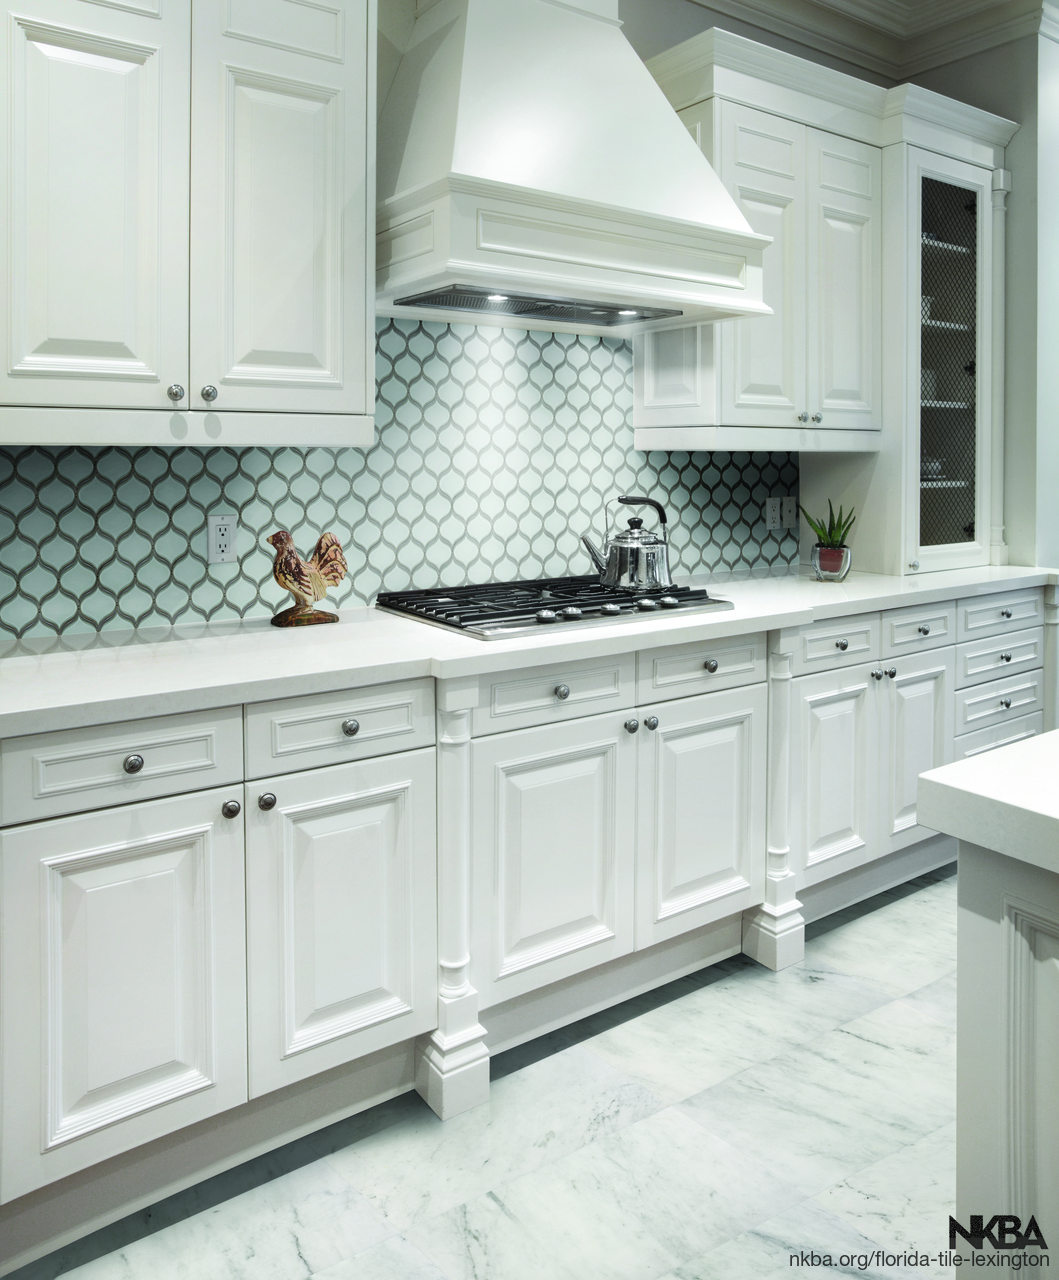 POM Pure White arabesque Mosaic Kitchen Backsplash. - NKBA